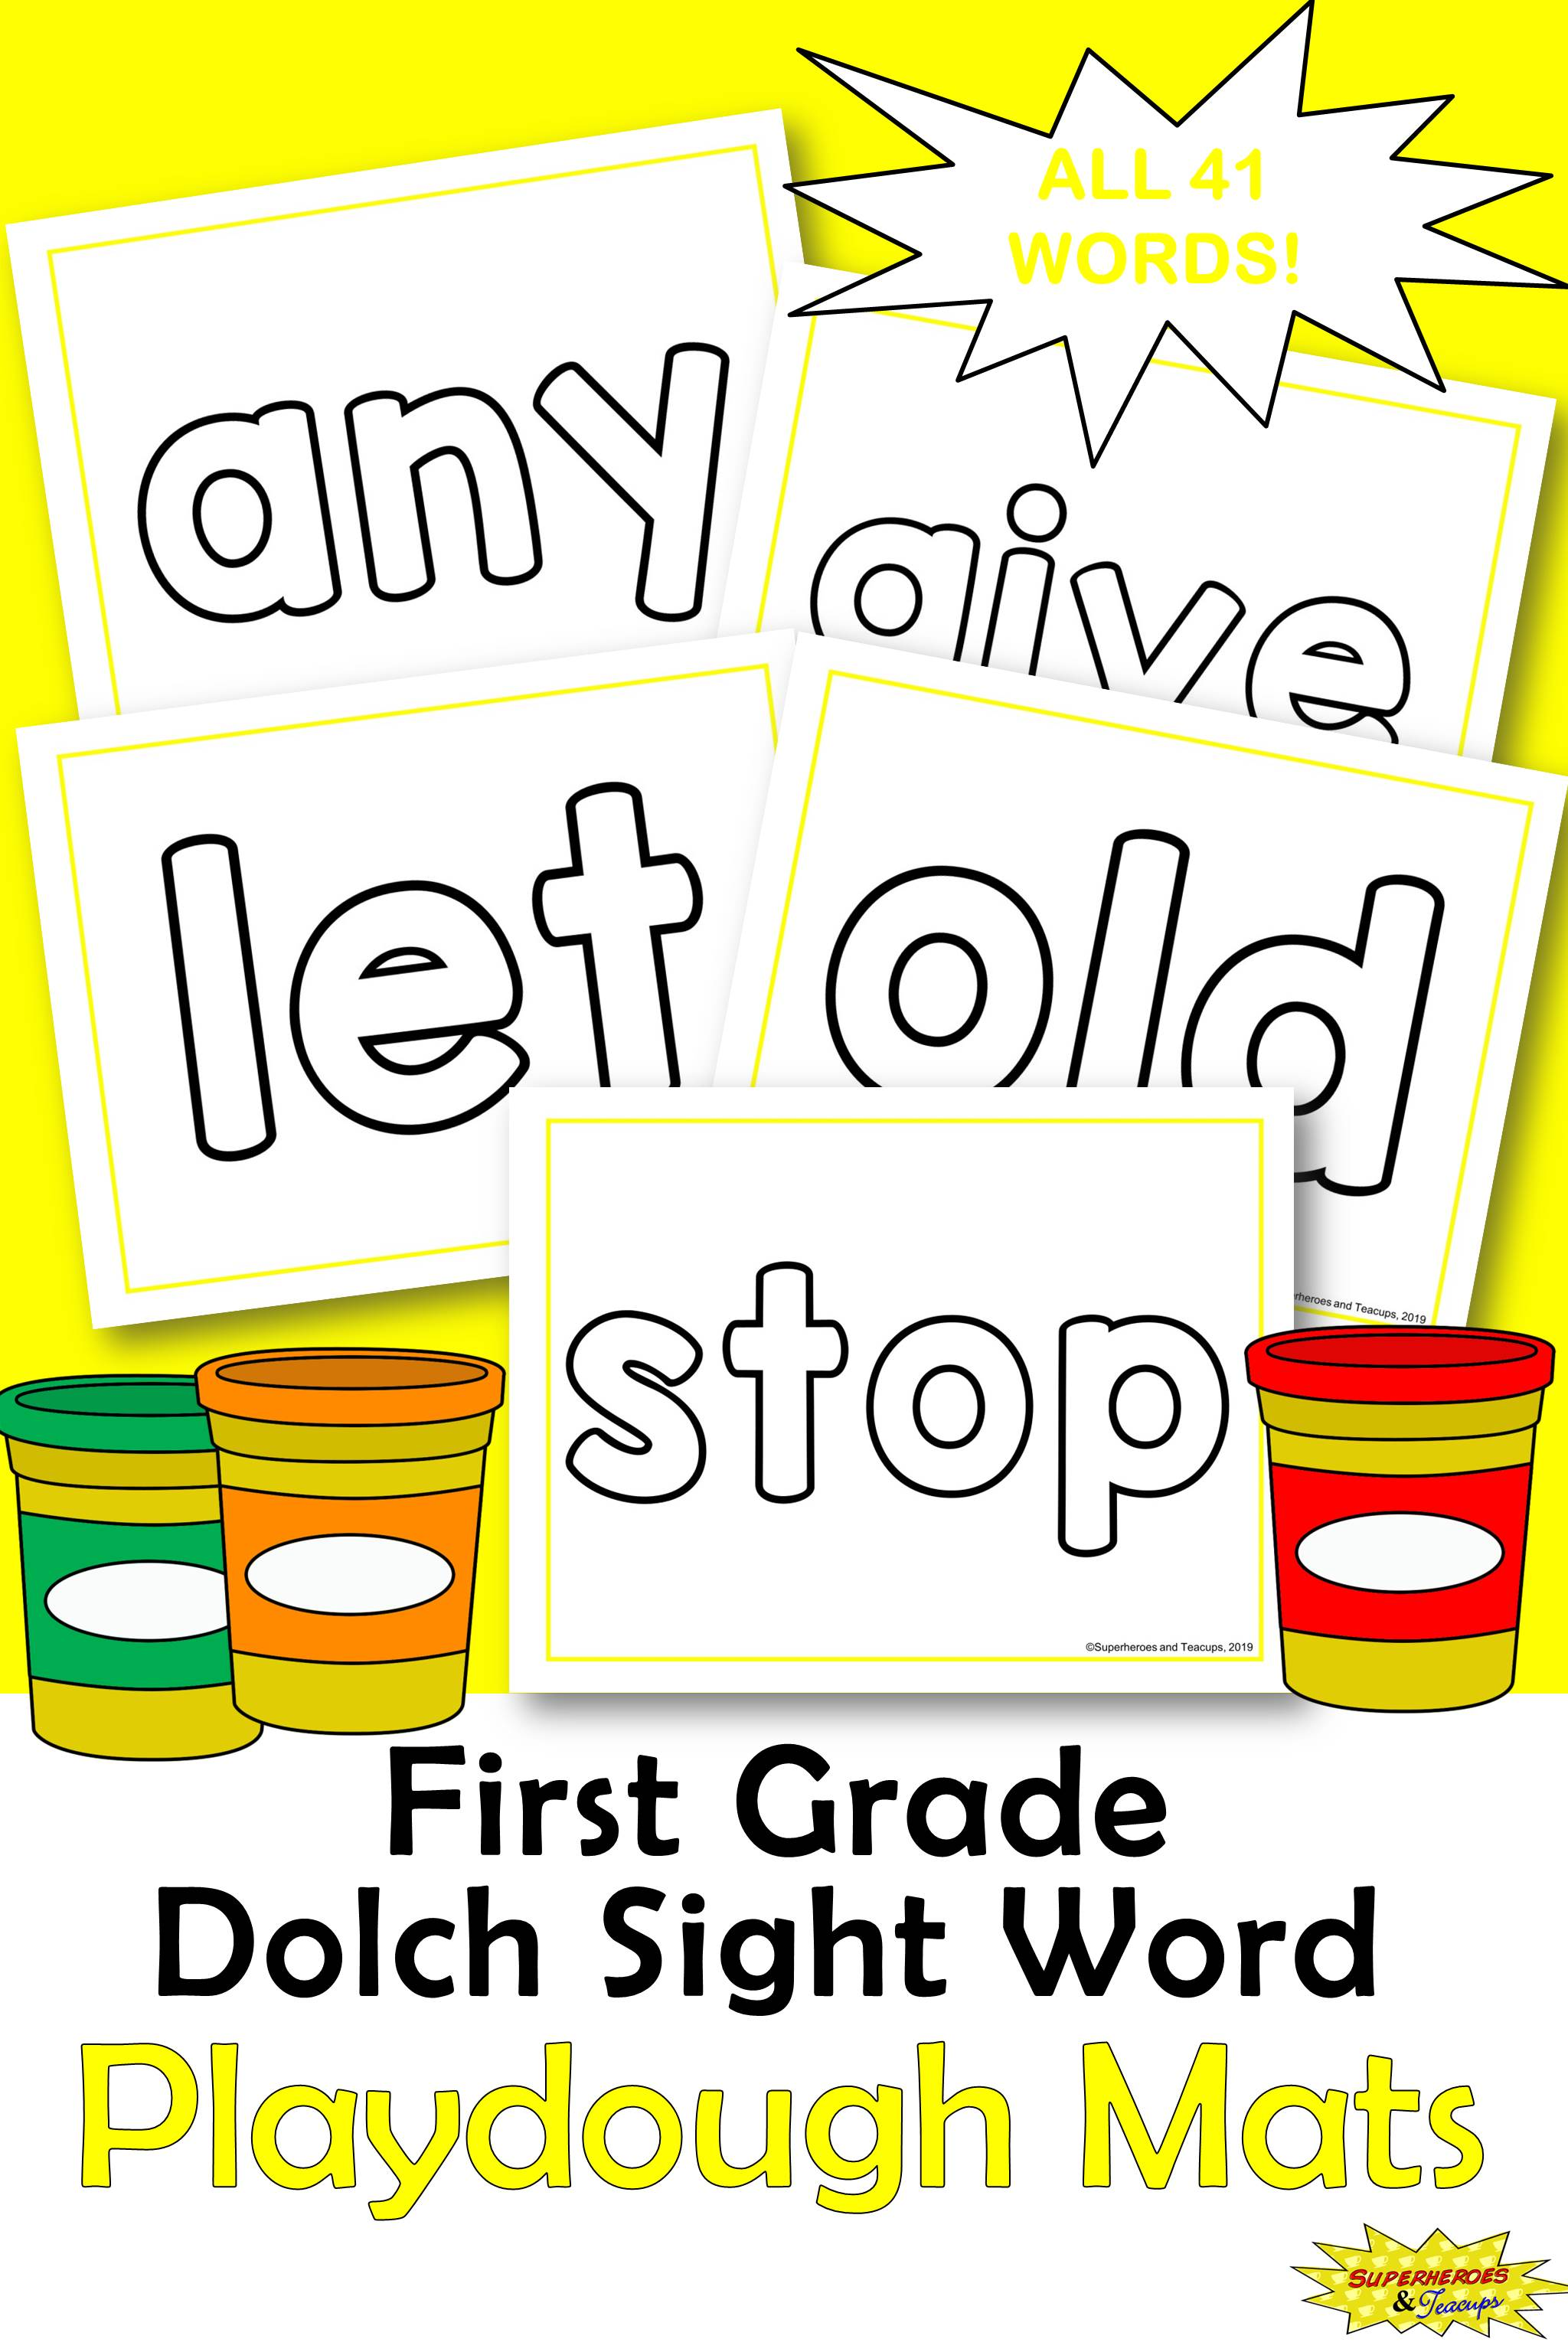 First Grade Dolch Sight Word Playdough Mats